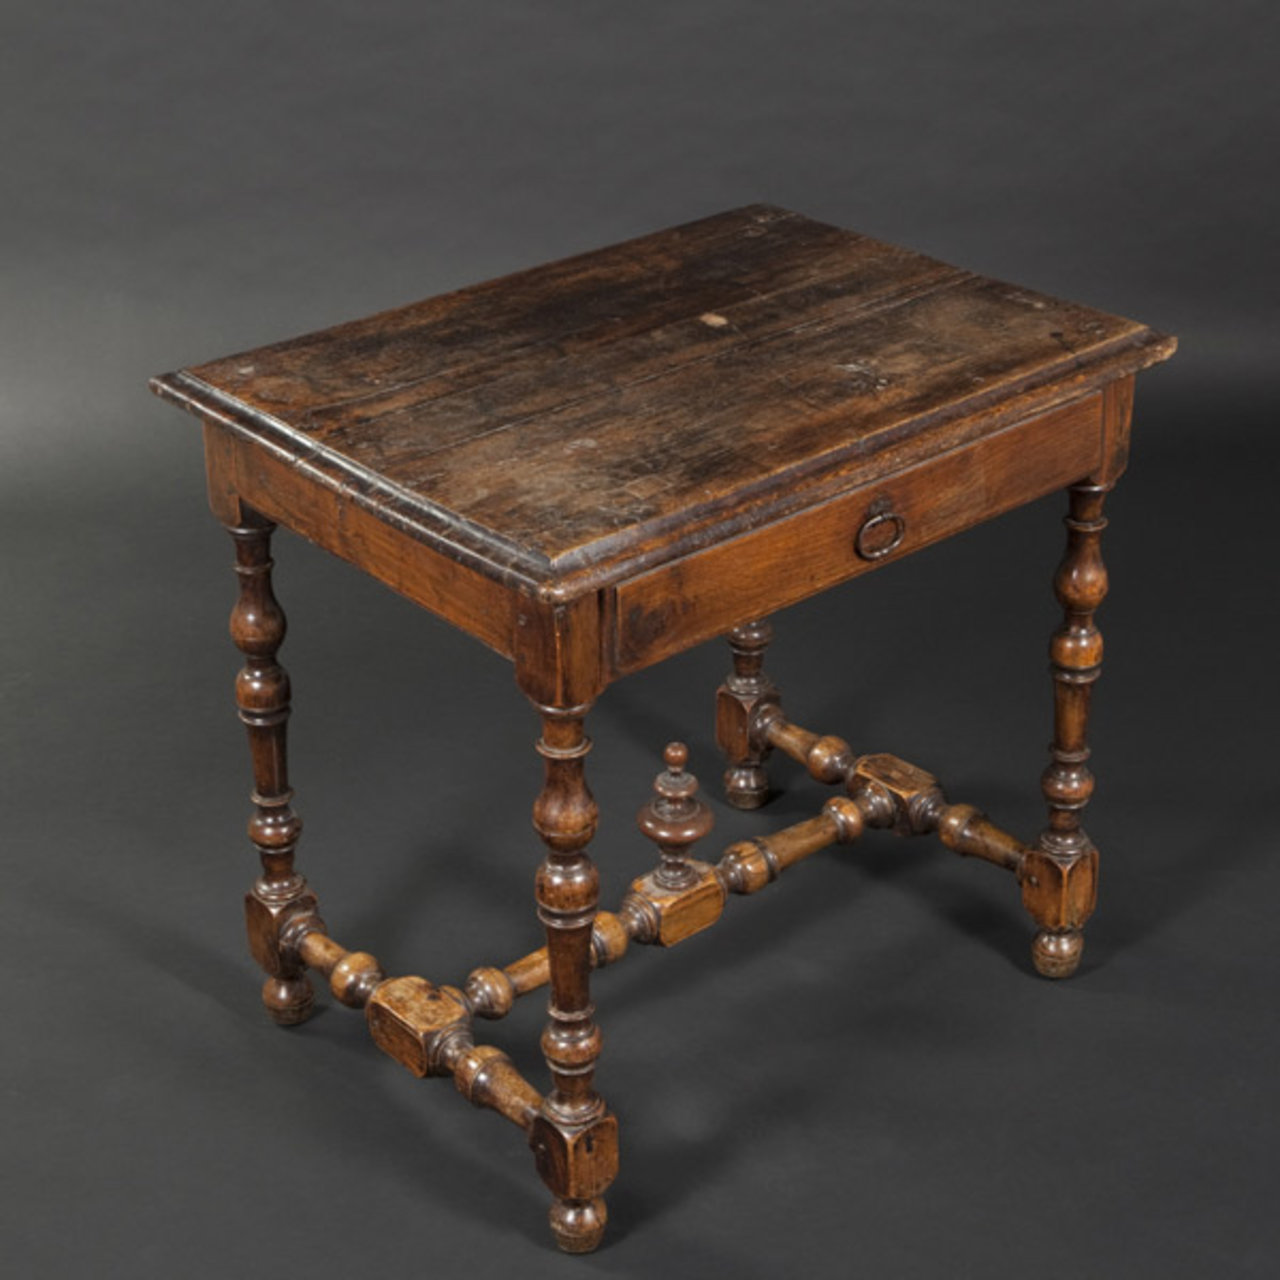 Louis XIII table